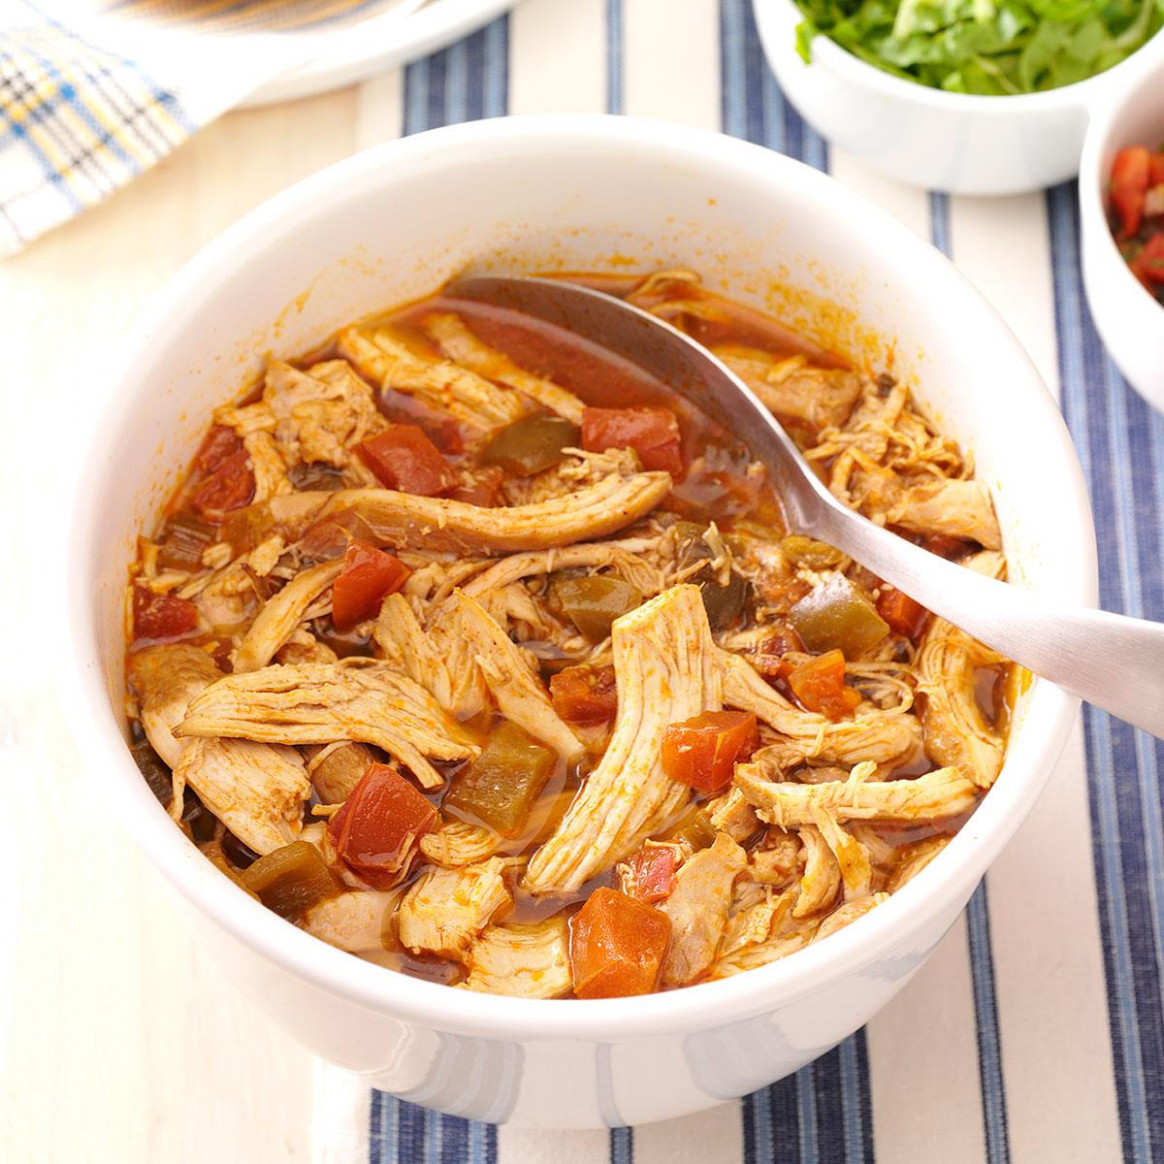 Spicy Shredded Chicken - recipes pulled chicken